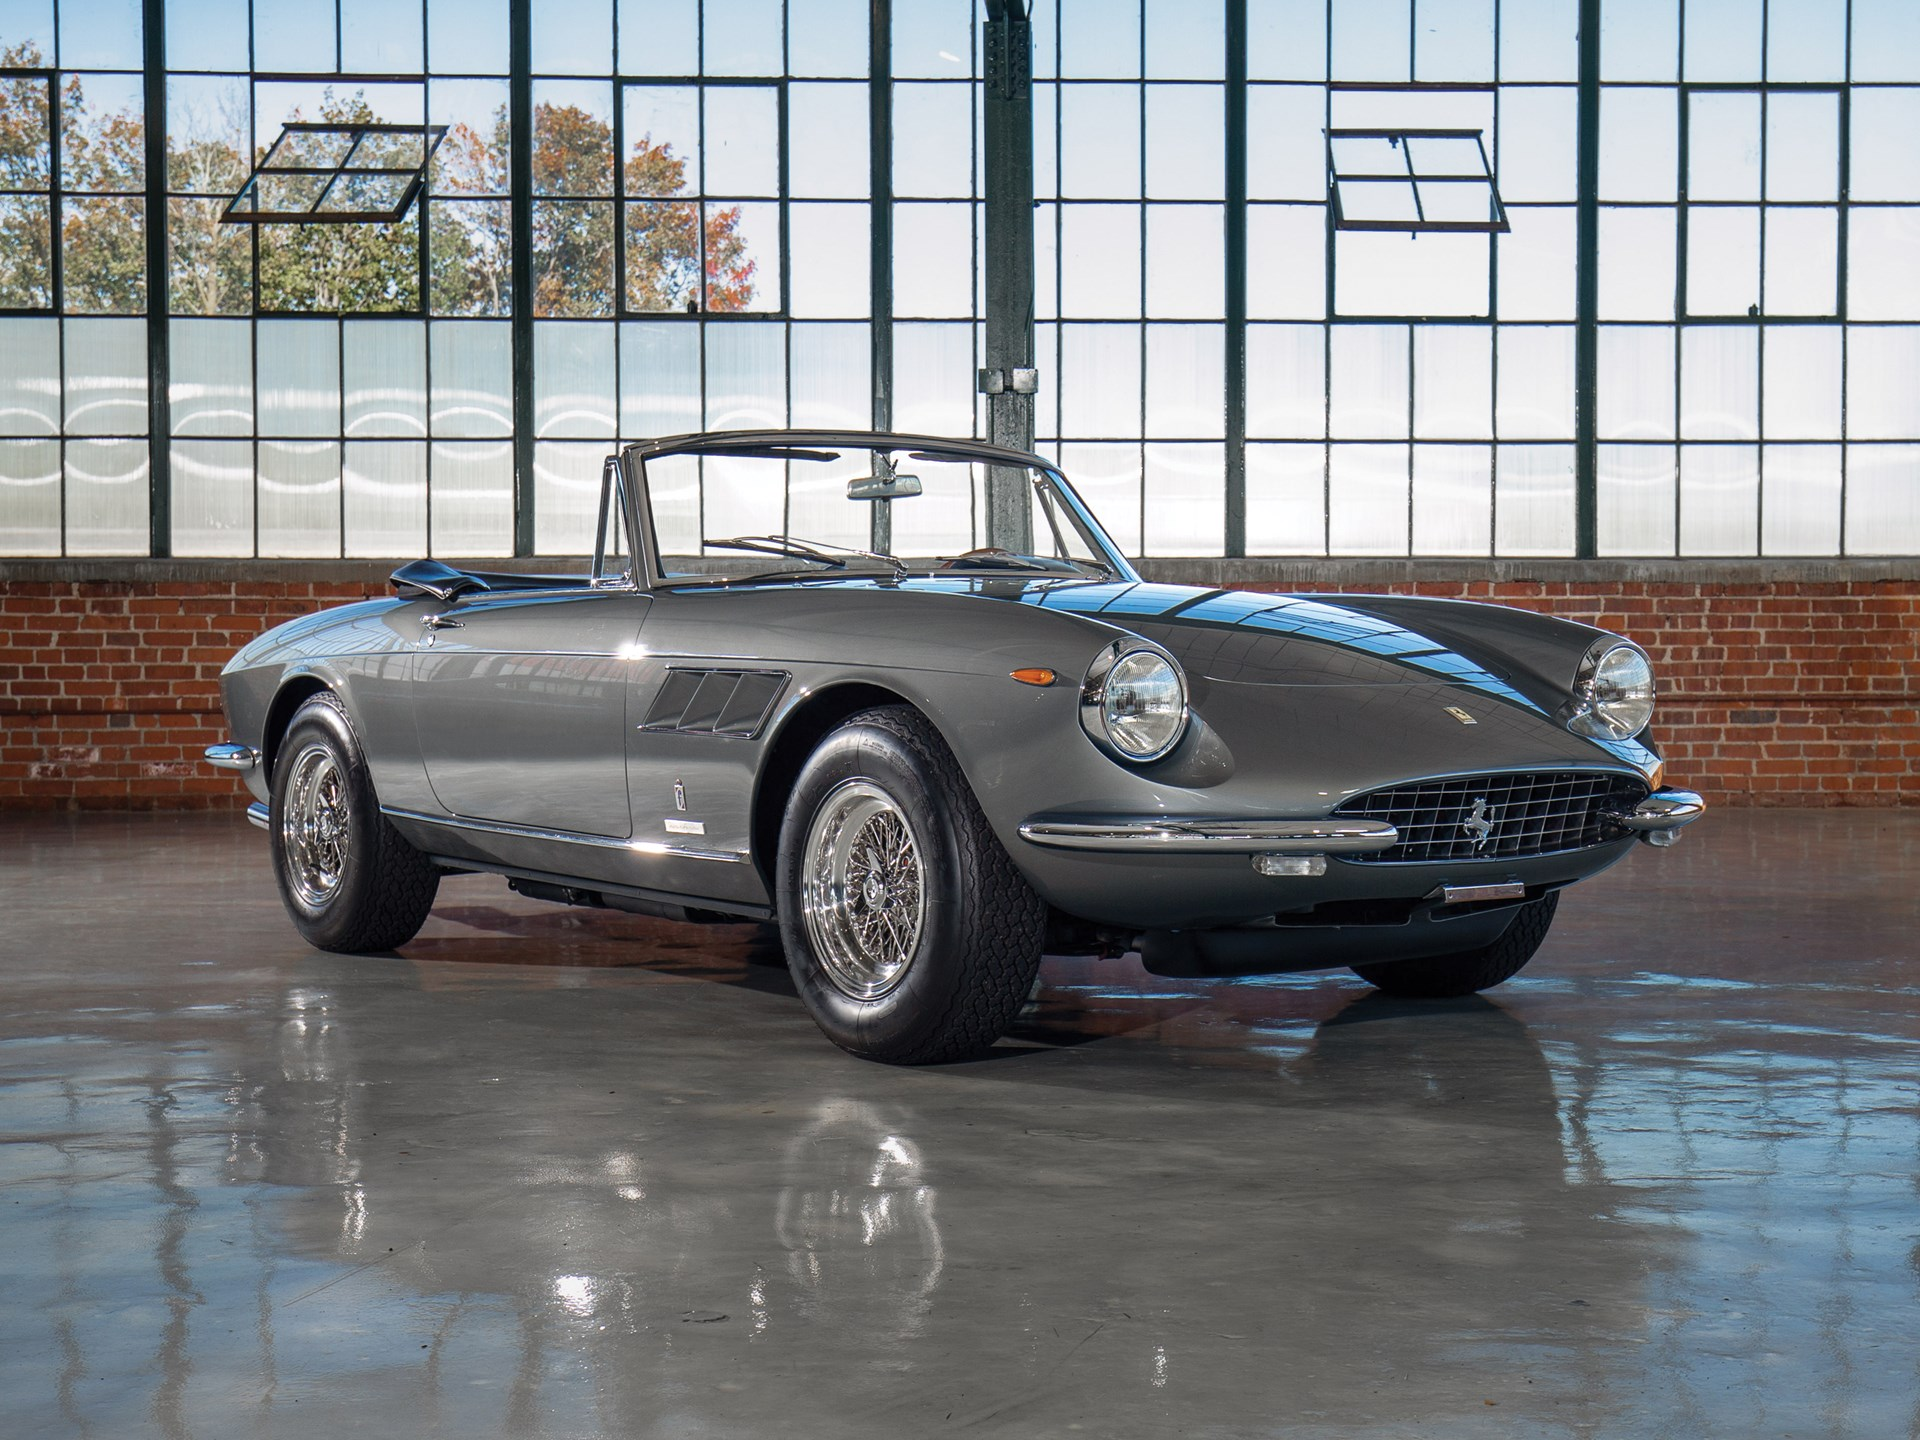 Image result for RM Scottsdale 330GTS